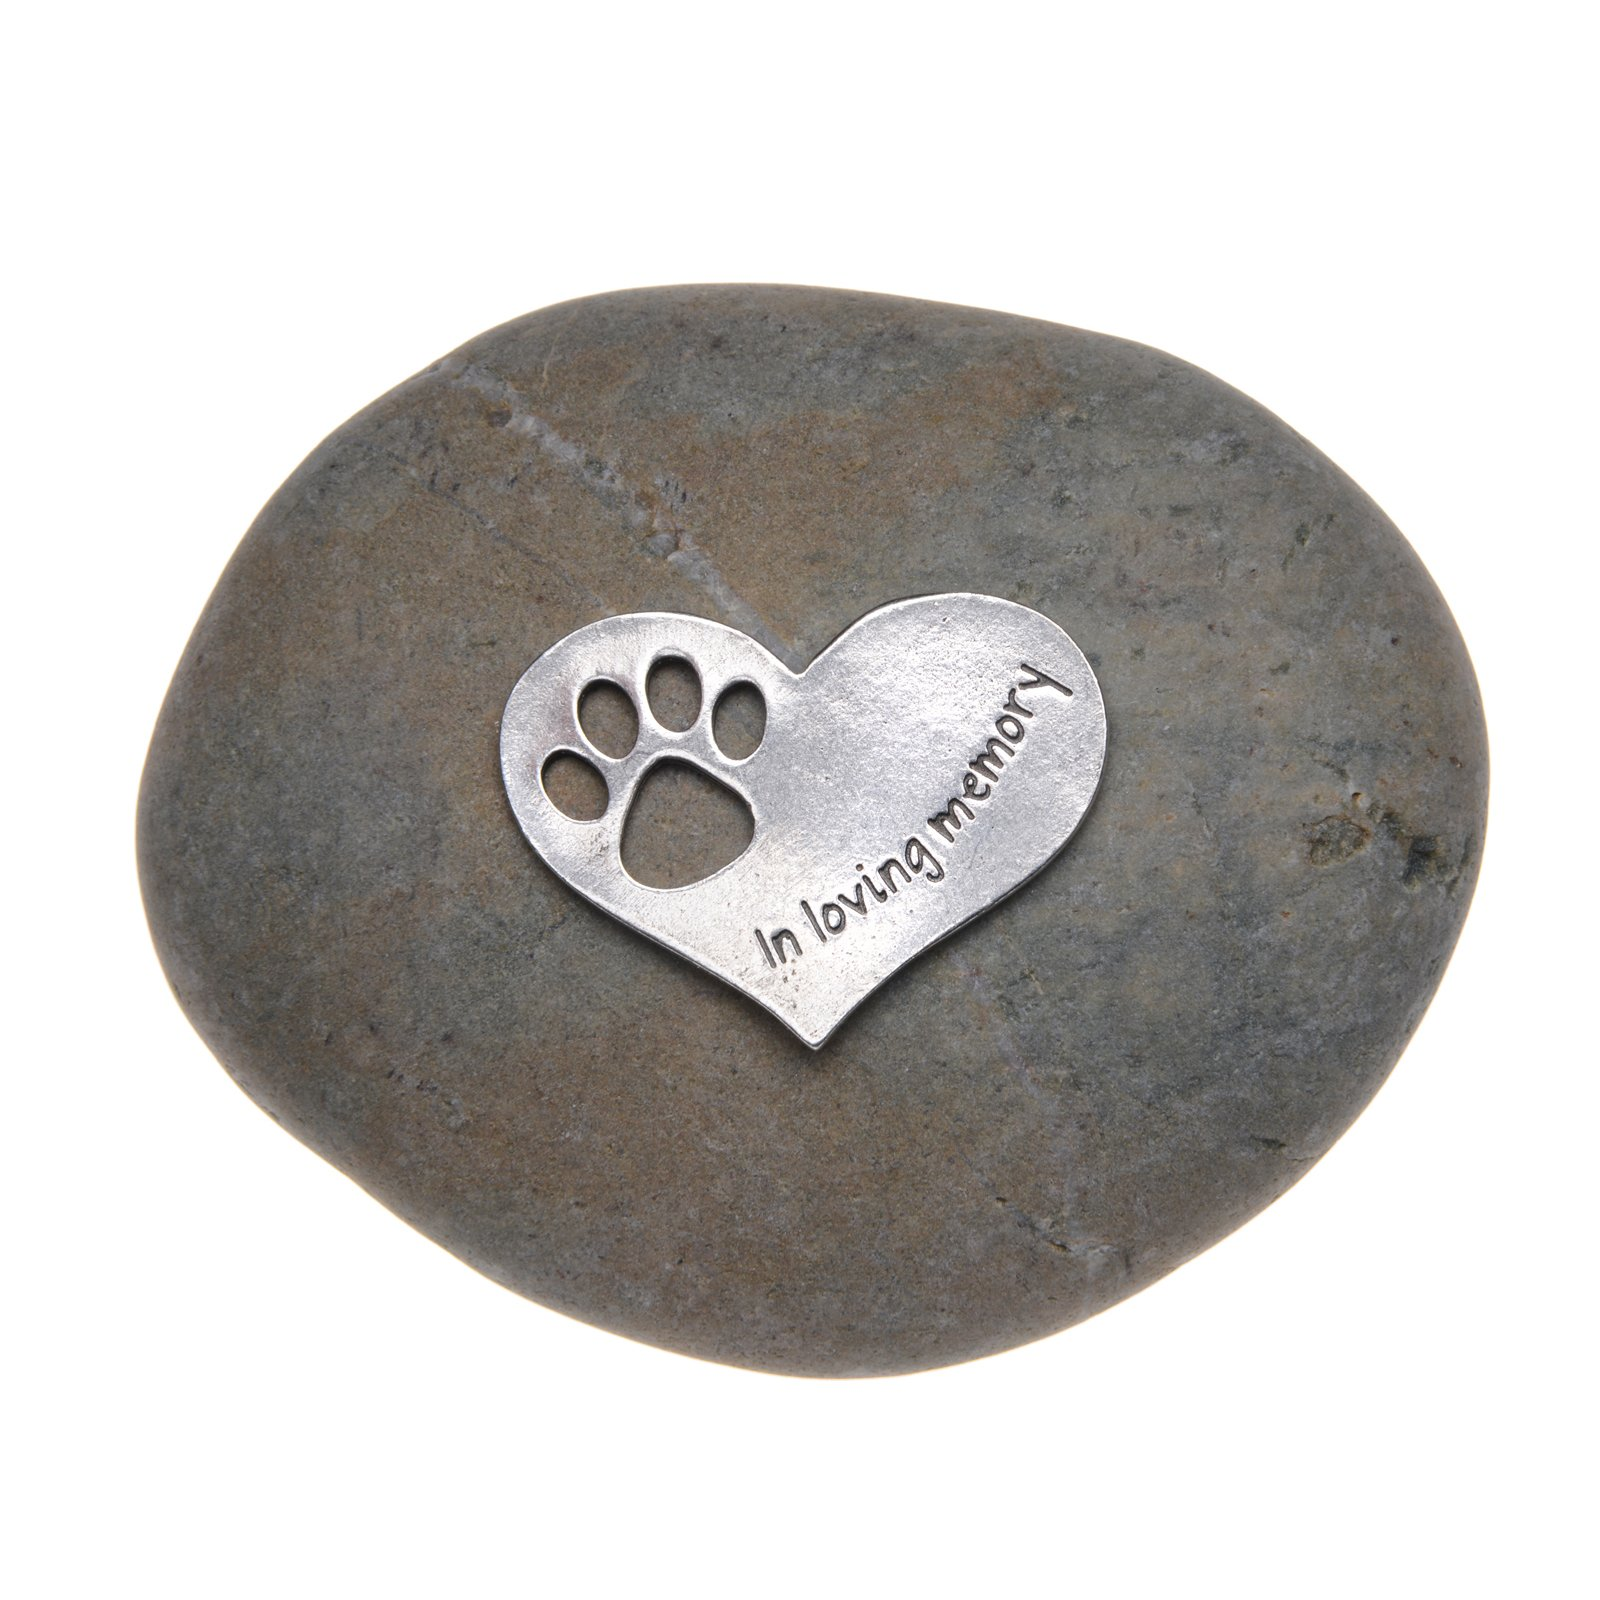 Pet Memorial In Loving Memory Paw Print Stone for Dogs or Cats - Sympathy Remembrance Stone by Whitney Howard Designs